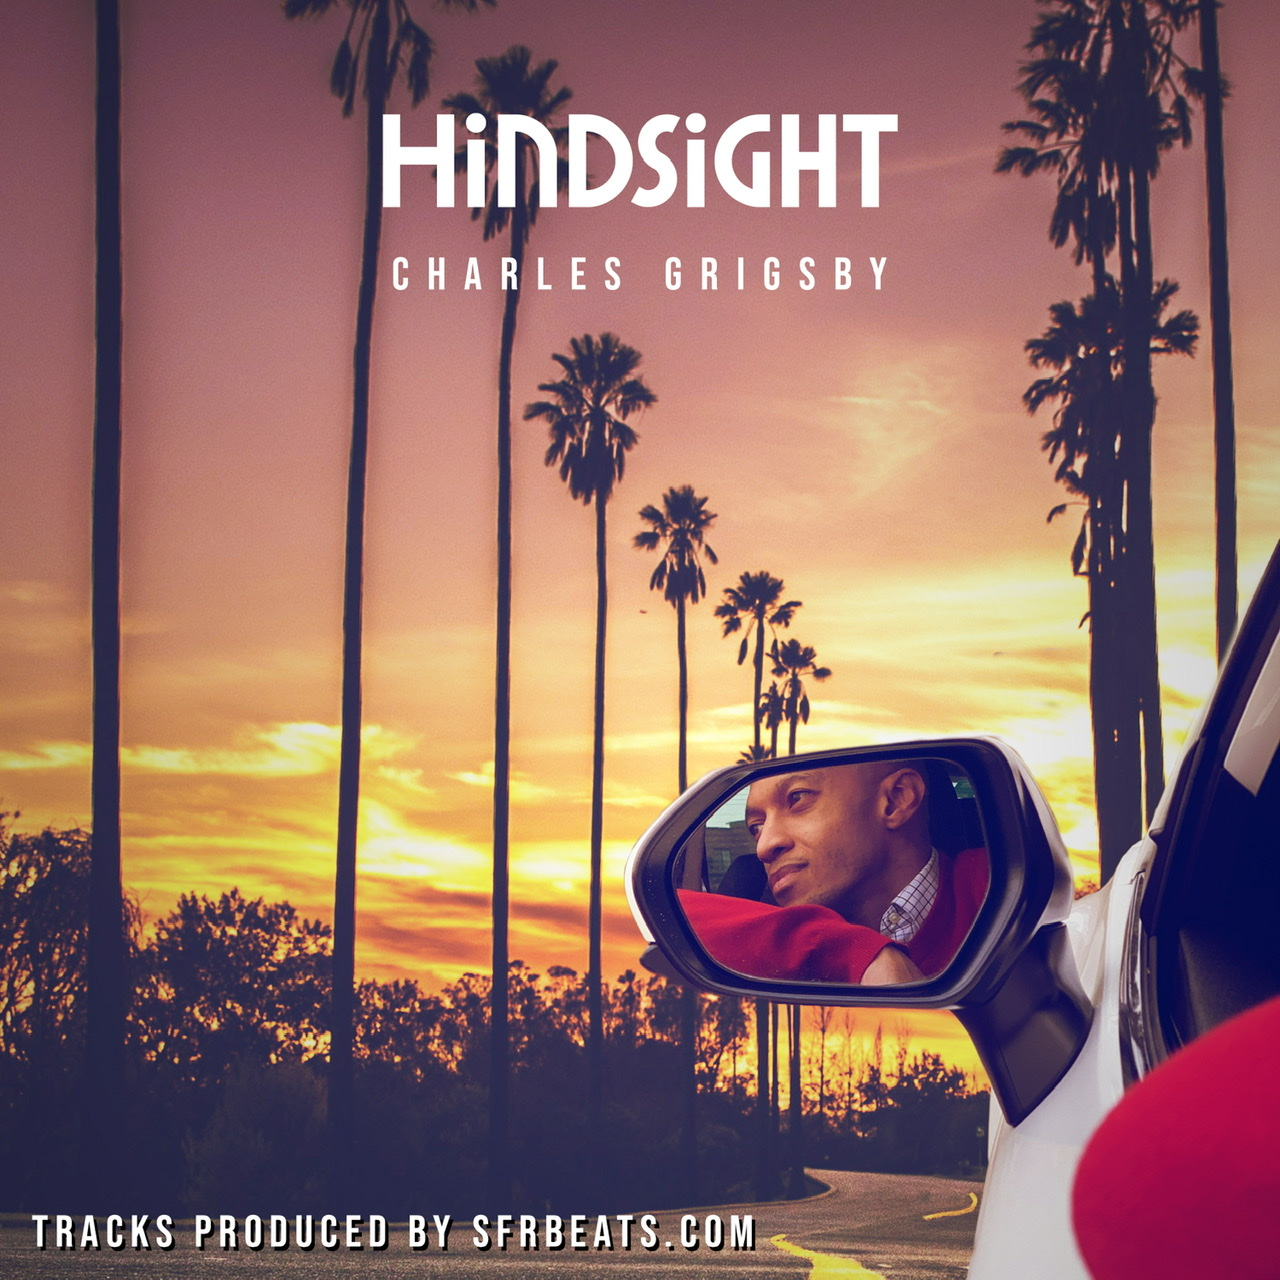 New Album From Charles Grigsby